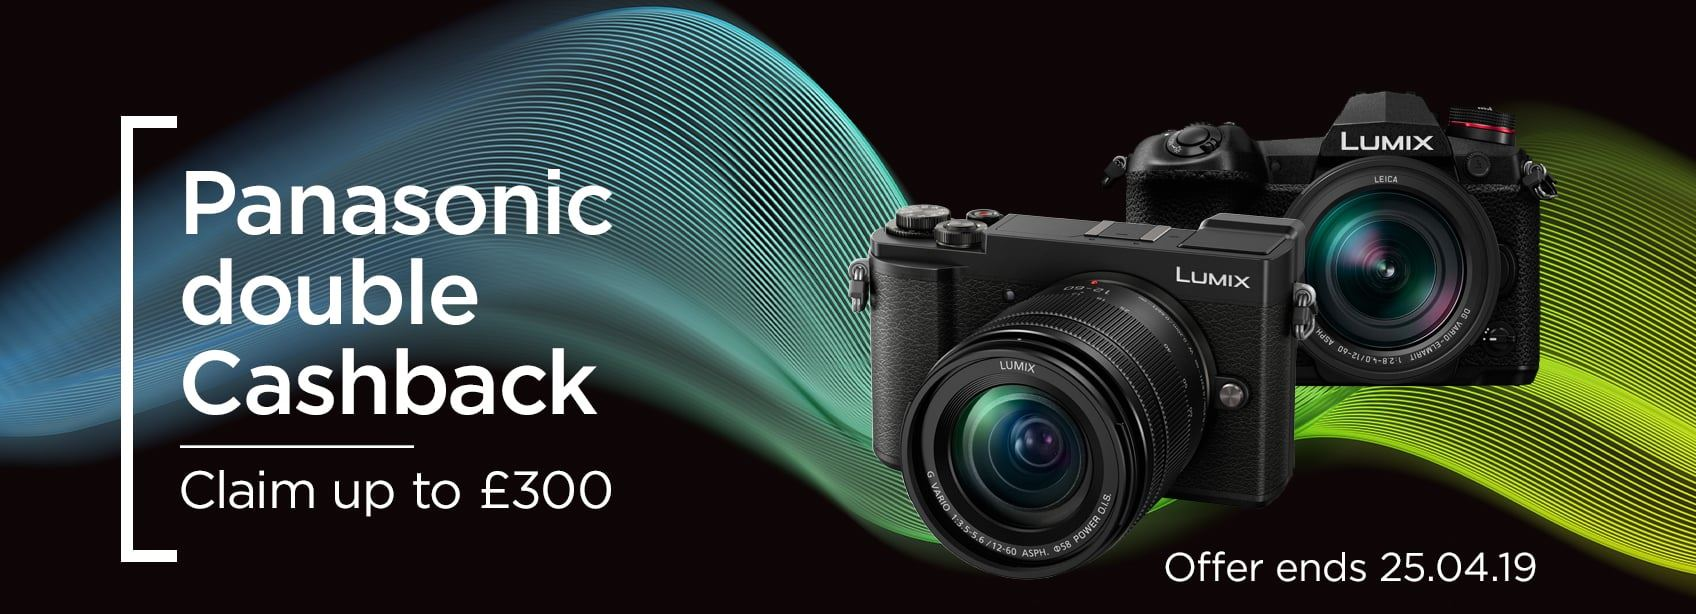 Panasonic Double Cashback